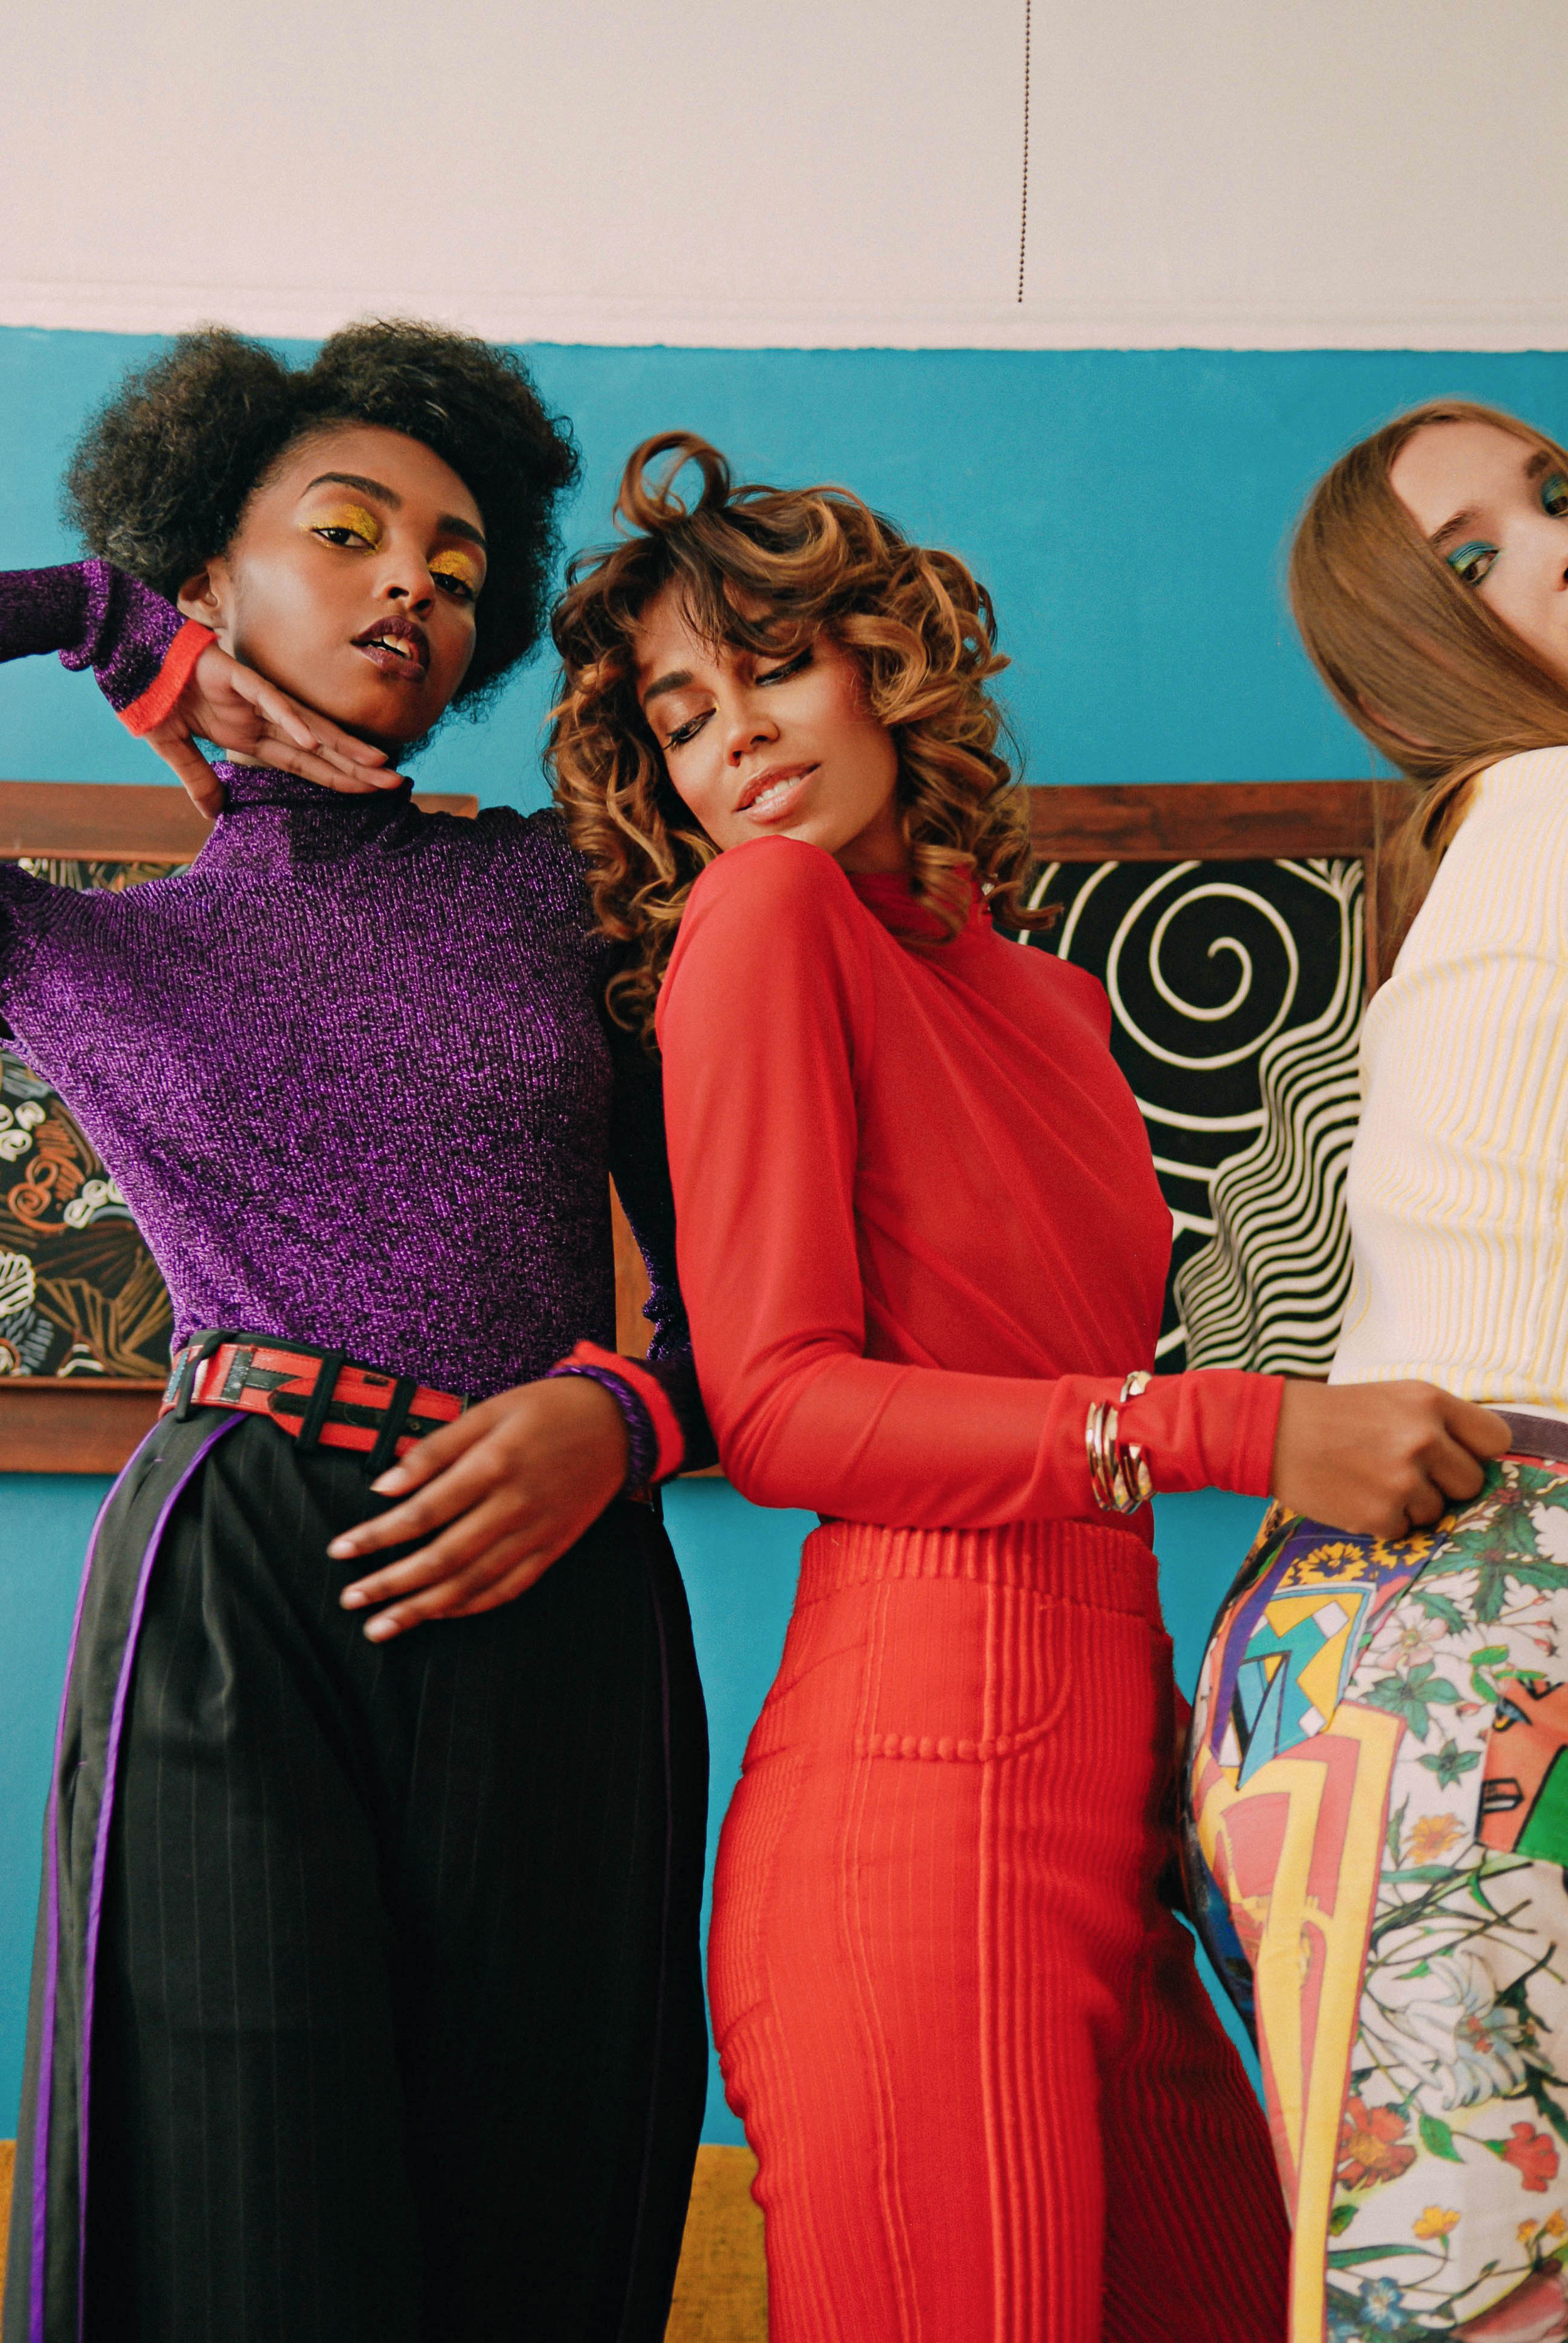 From left to right:  Top by Missoni, pants by Snow Xue Gao  Top by Elena Rudenko, pants by Zoe Champion